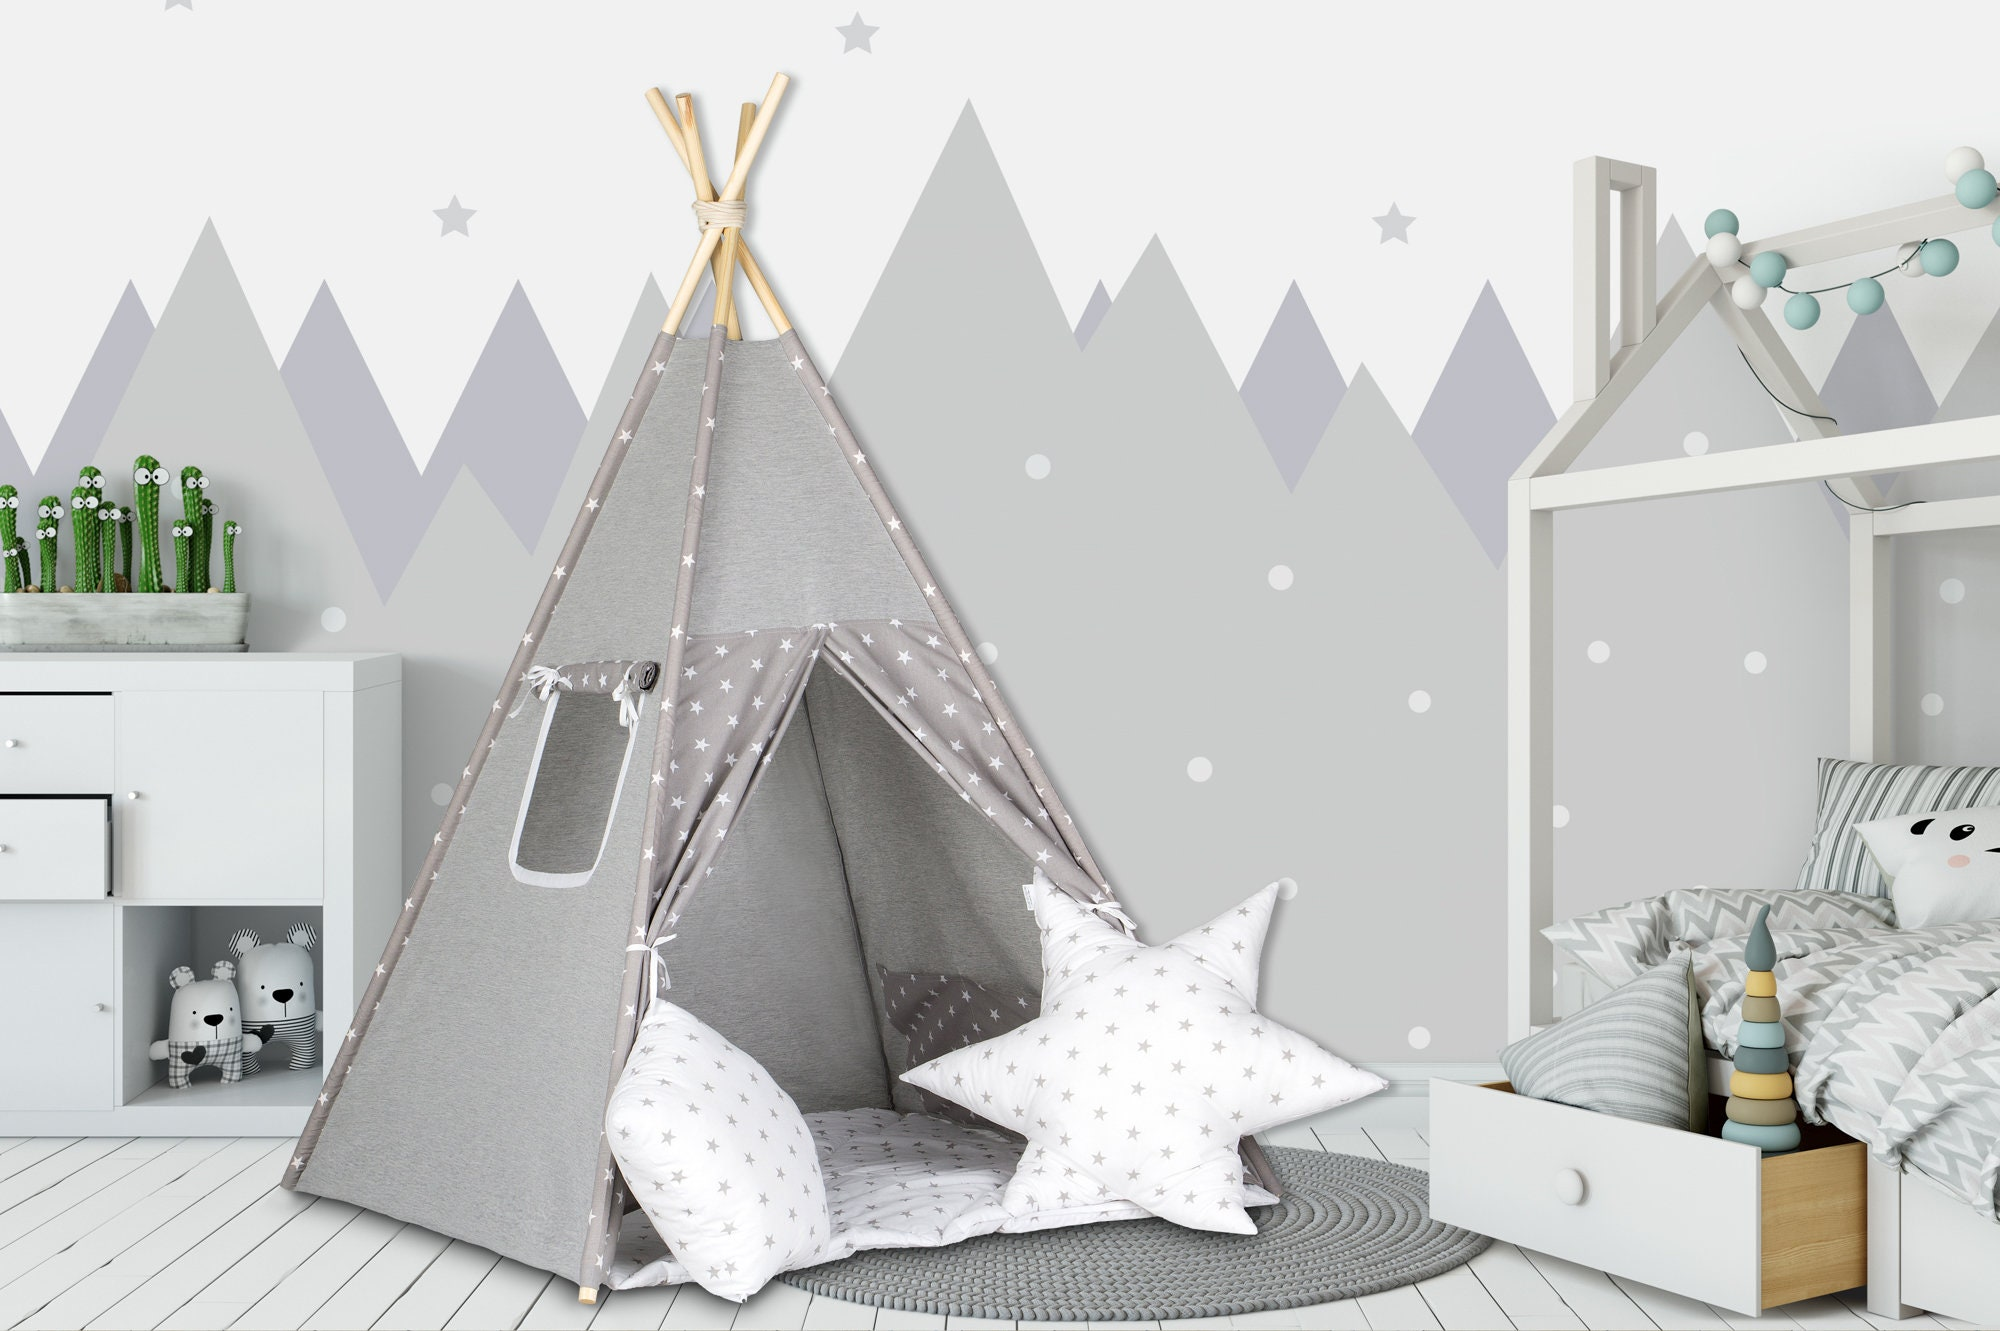 tipi zelt set etsy. Black Bedroom Furniture Sets. Home Design Ideas